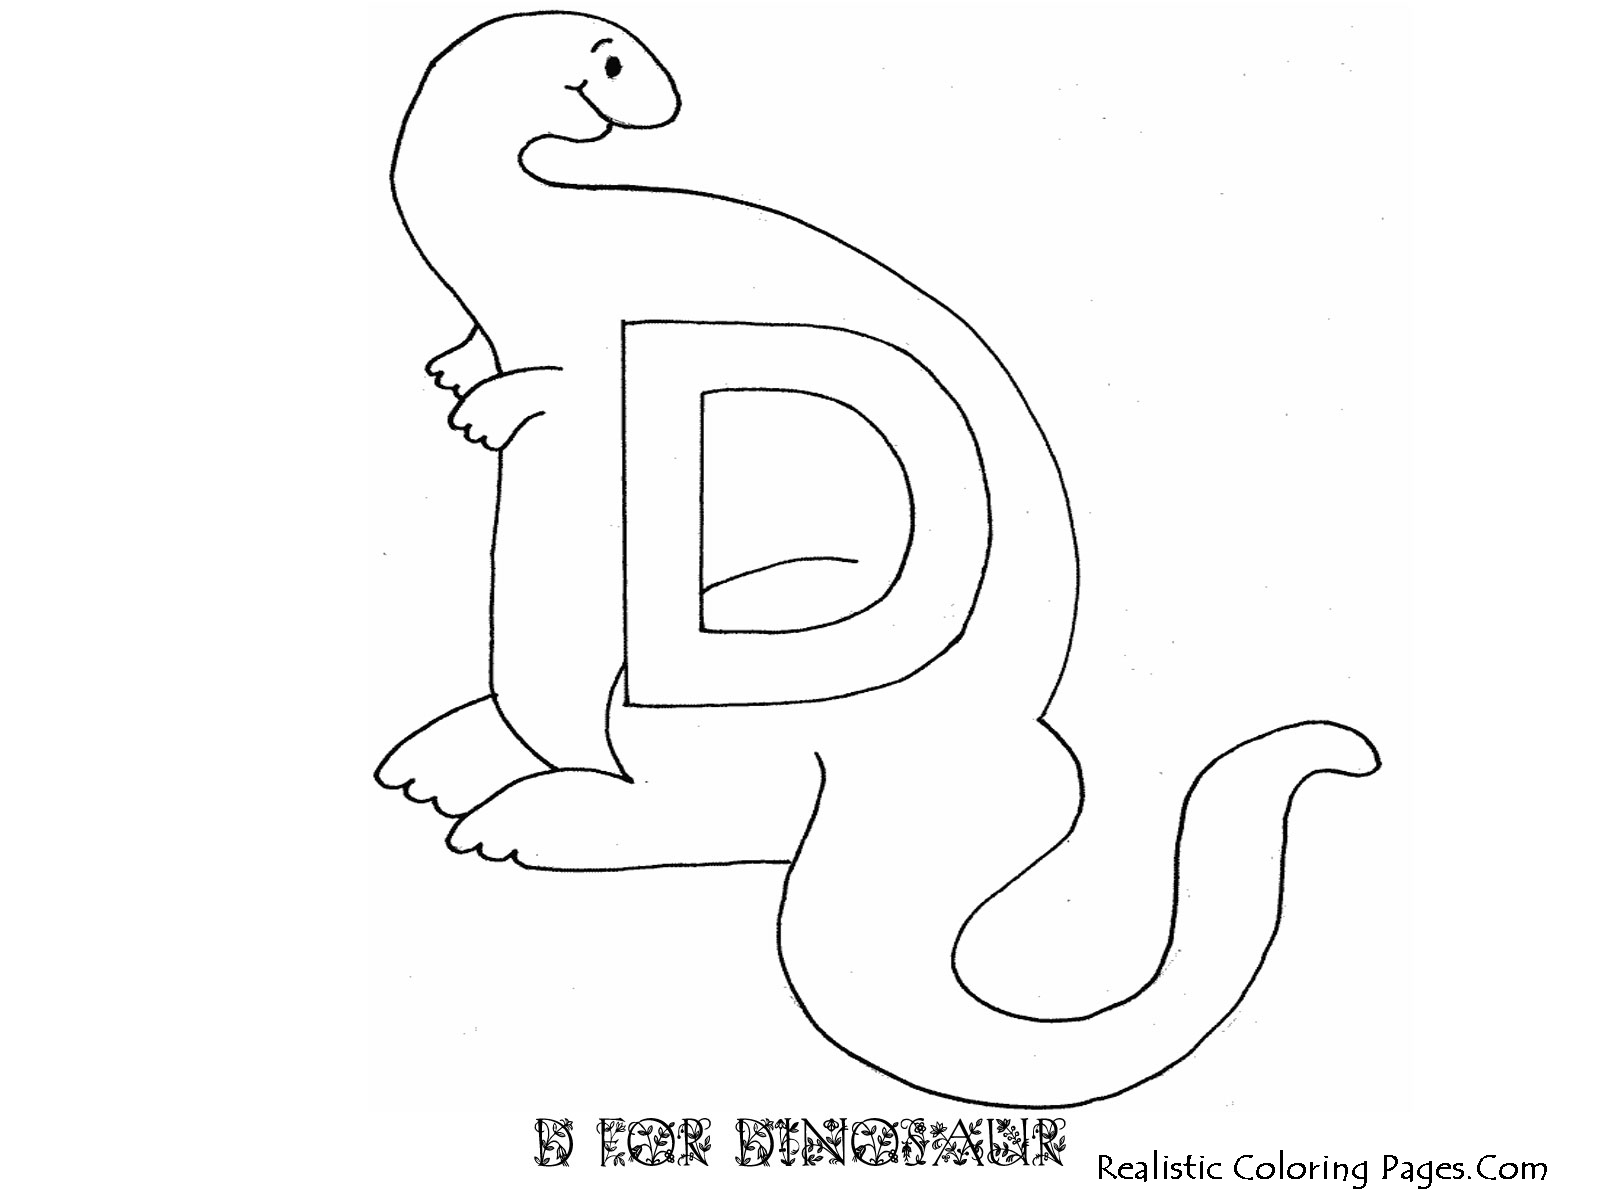 abc coloring pages - d letters alphabet coloring pages realistic coloring pages